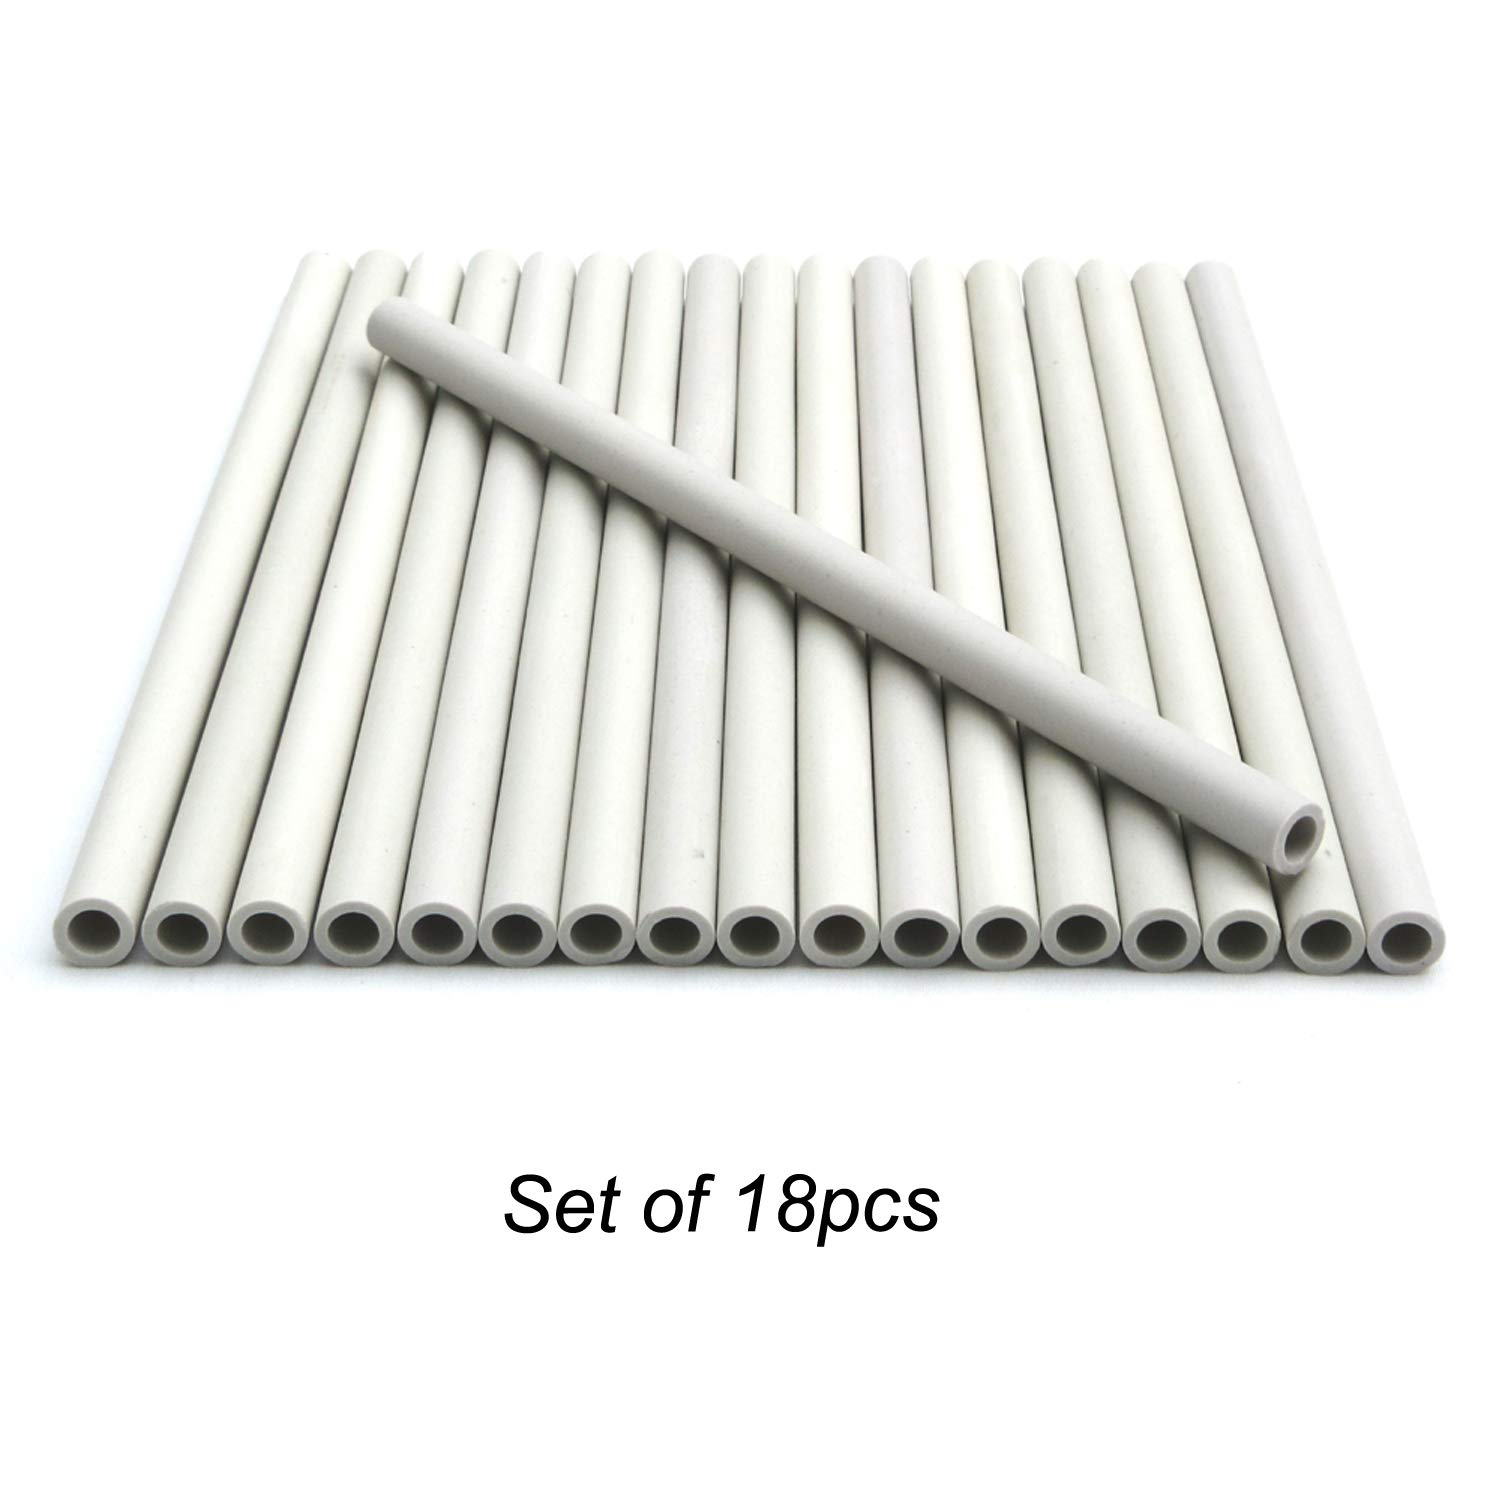 Direct store Parts DF-18 Replacement Gas Grill Ceramic Radiants, BBQ Grill Ceramic Rods for DCS Heat Plates, for DCS Grill 245398, DCSCT, 9.5'' long (18) by Direct store